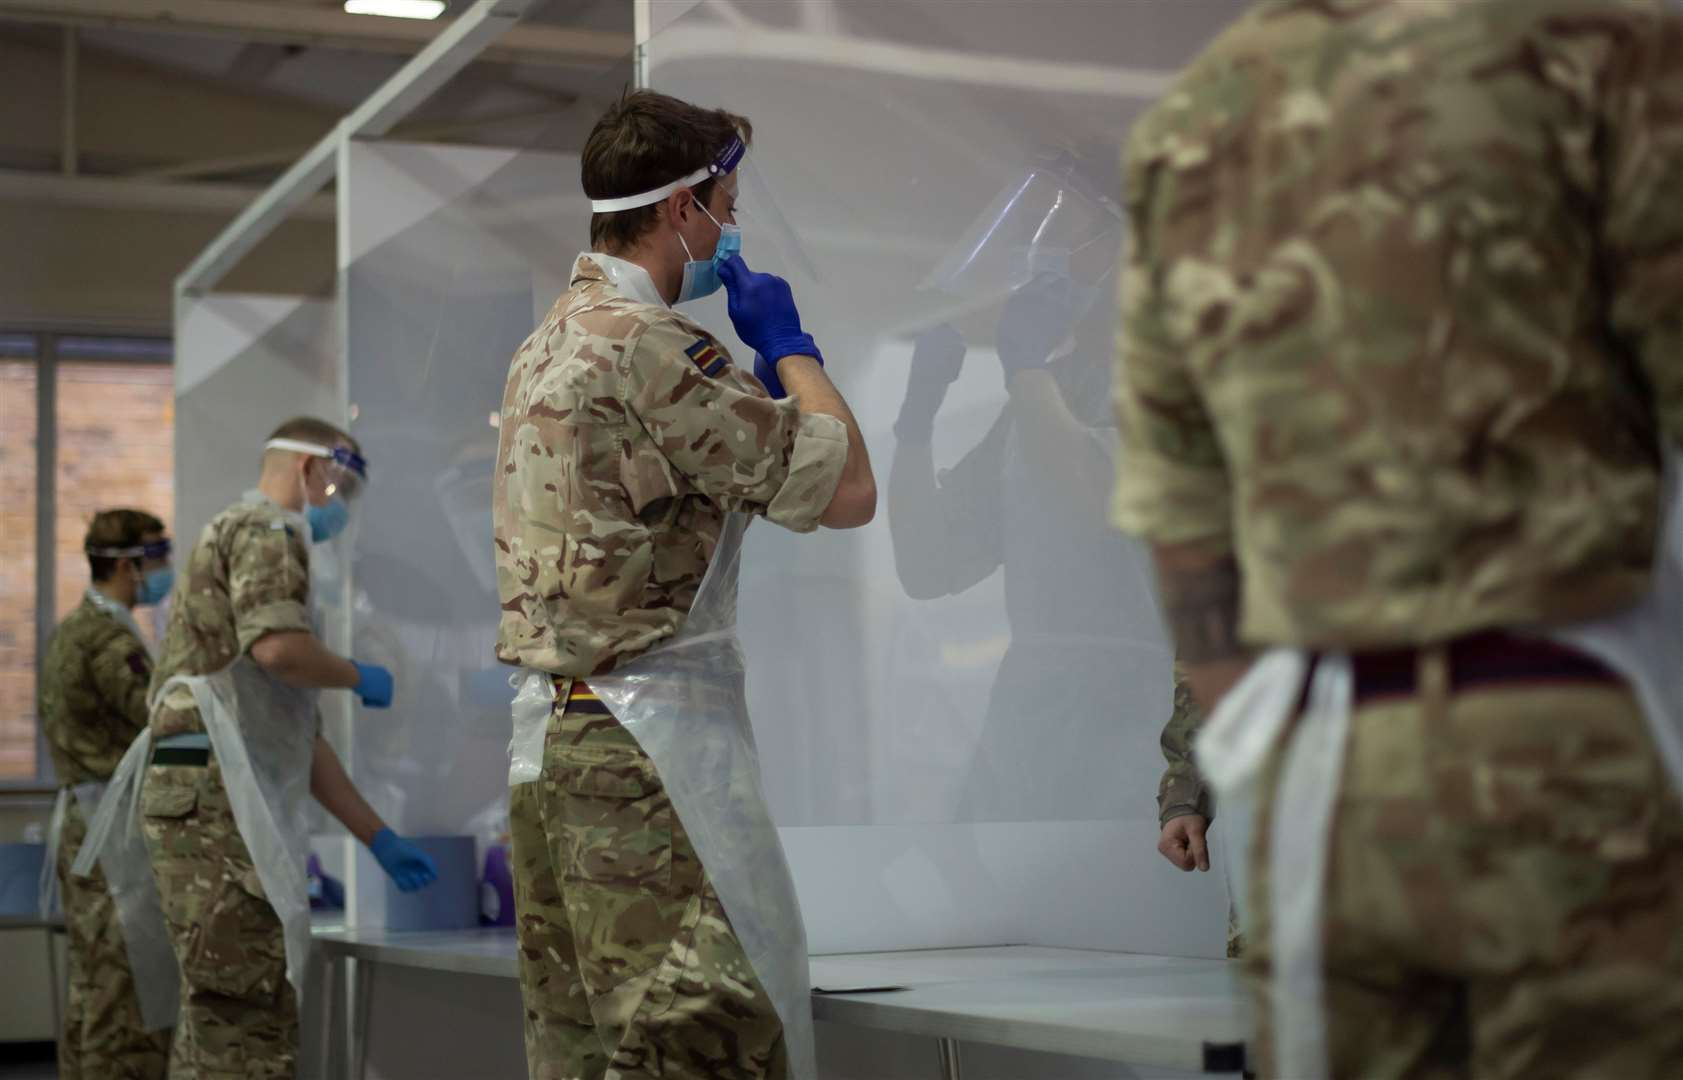 Soldiers at the Medway testing centre